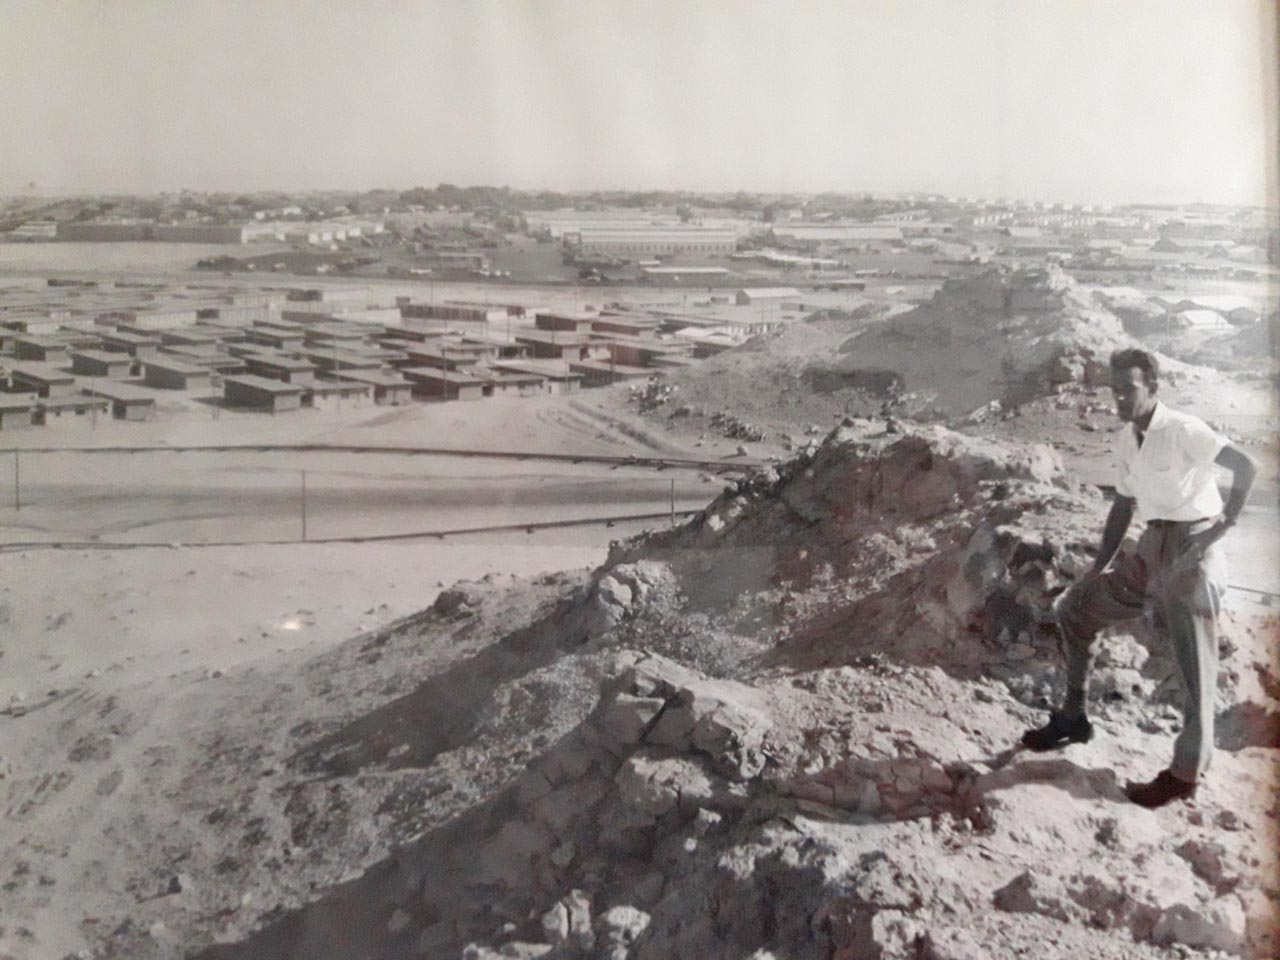 Willy Timmermans Overlooking Dhahran - 1953